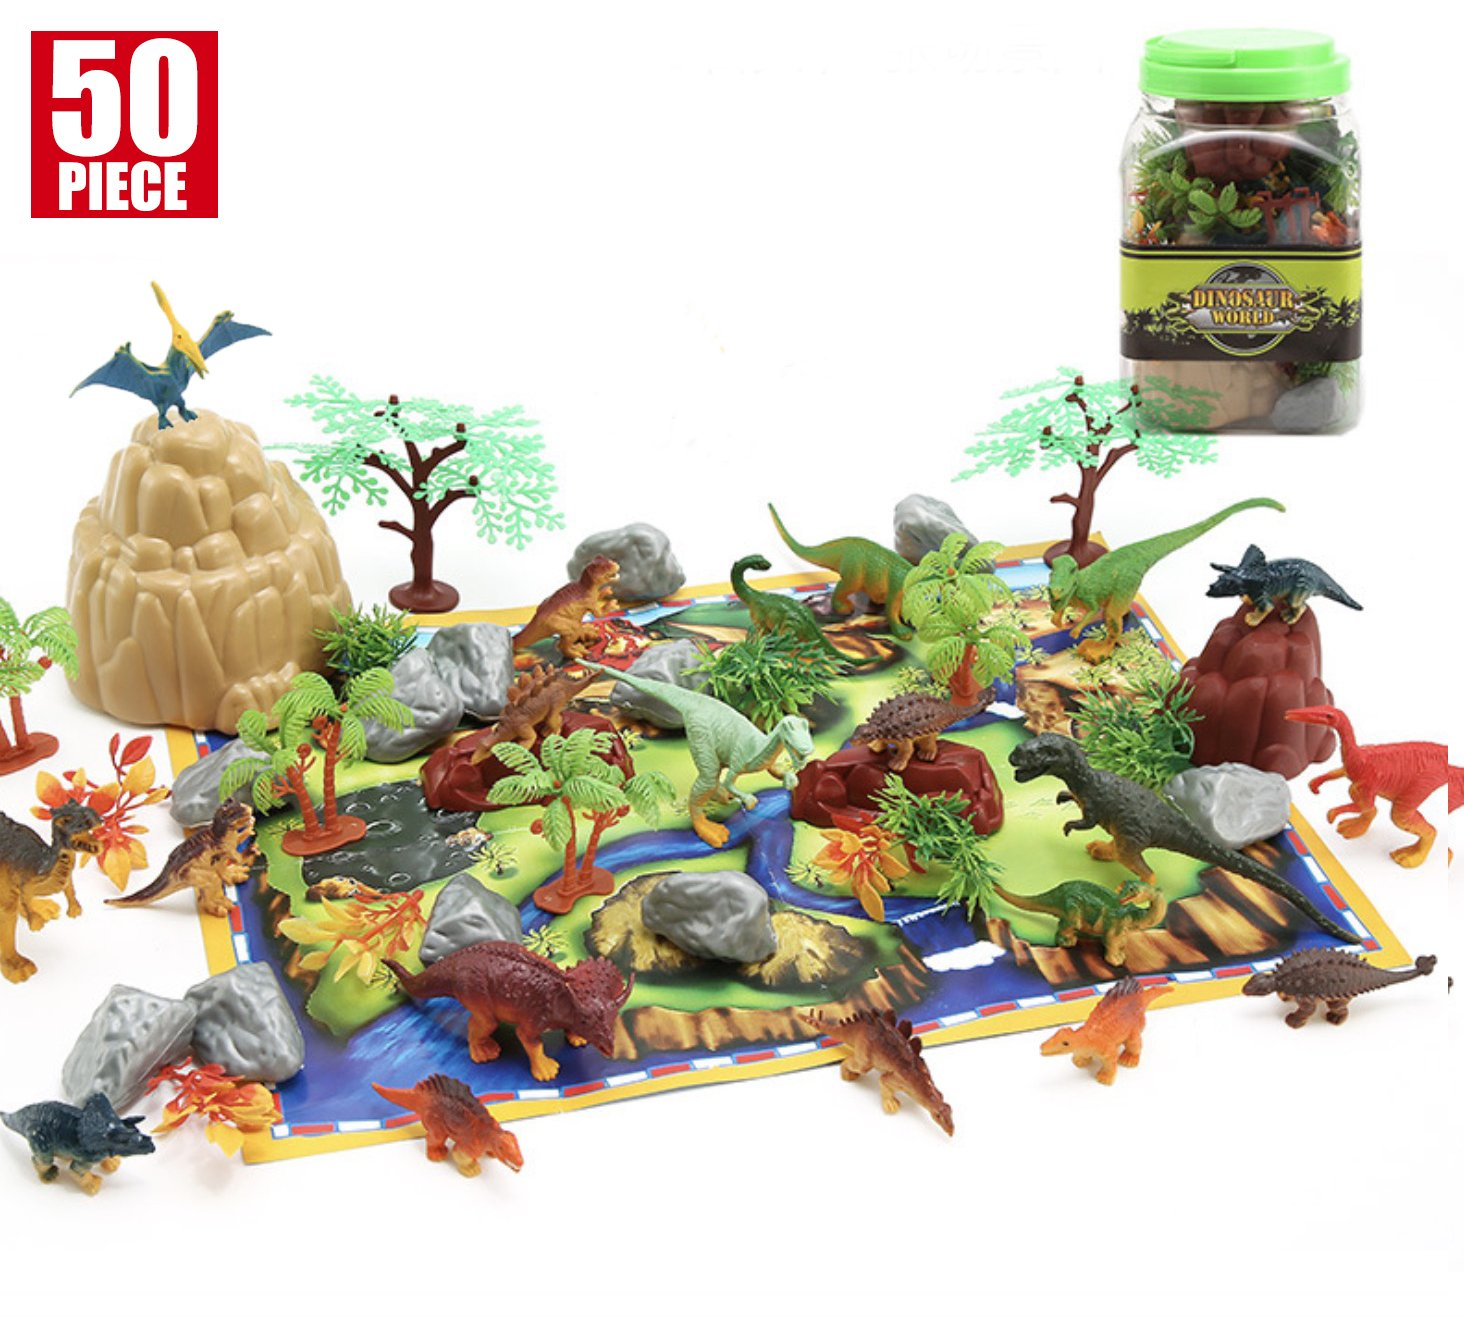 50 Pieces Educational Dinosaur Play Set - Dinosaur Toy for boy, Plastic Assorted Dinosaur Figures, Plant, Stone with play mat